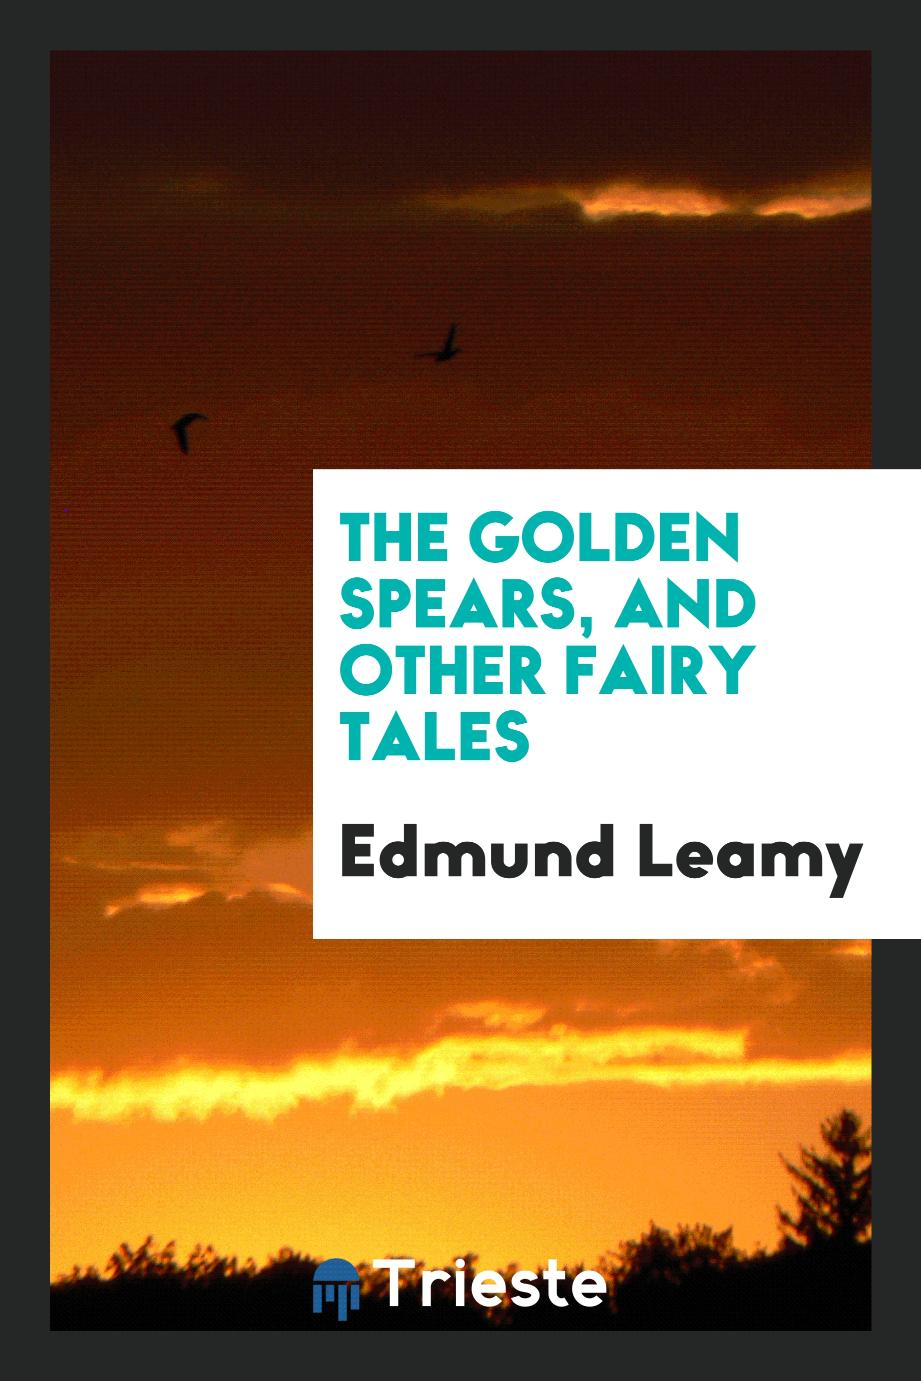 The golden spears, and other fairy tales